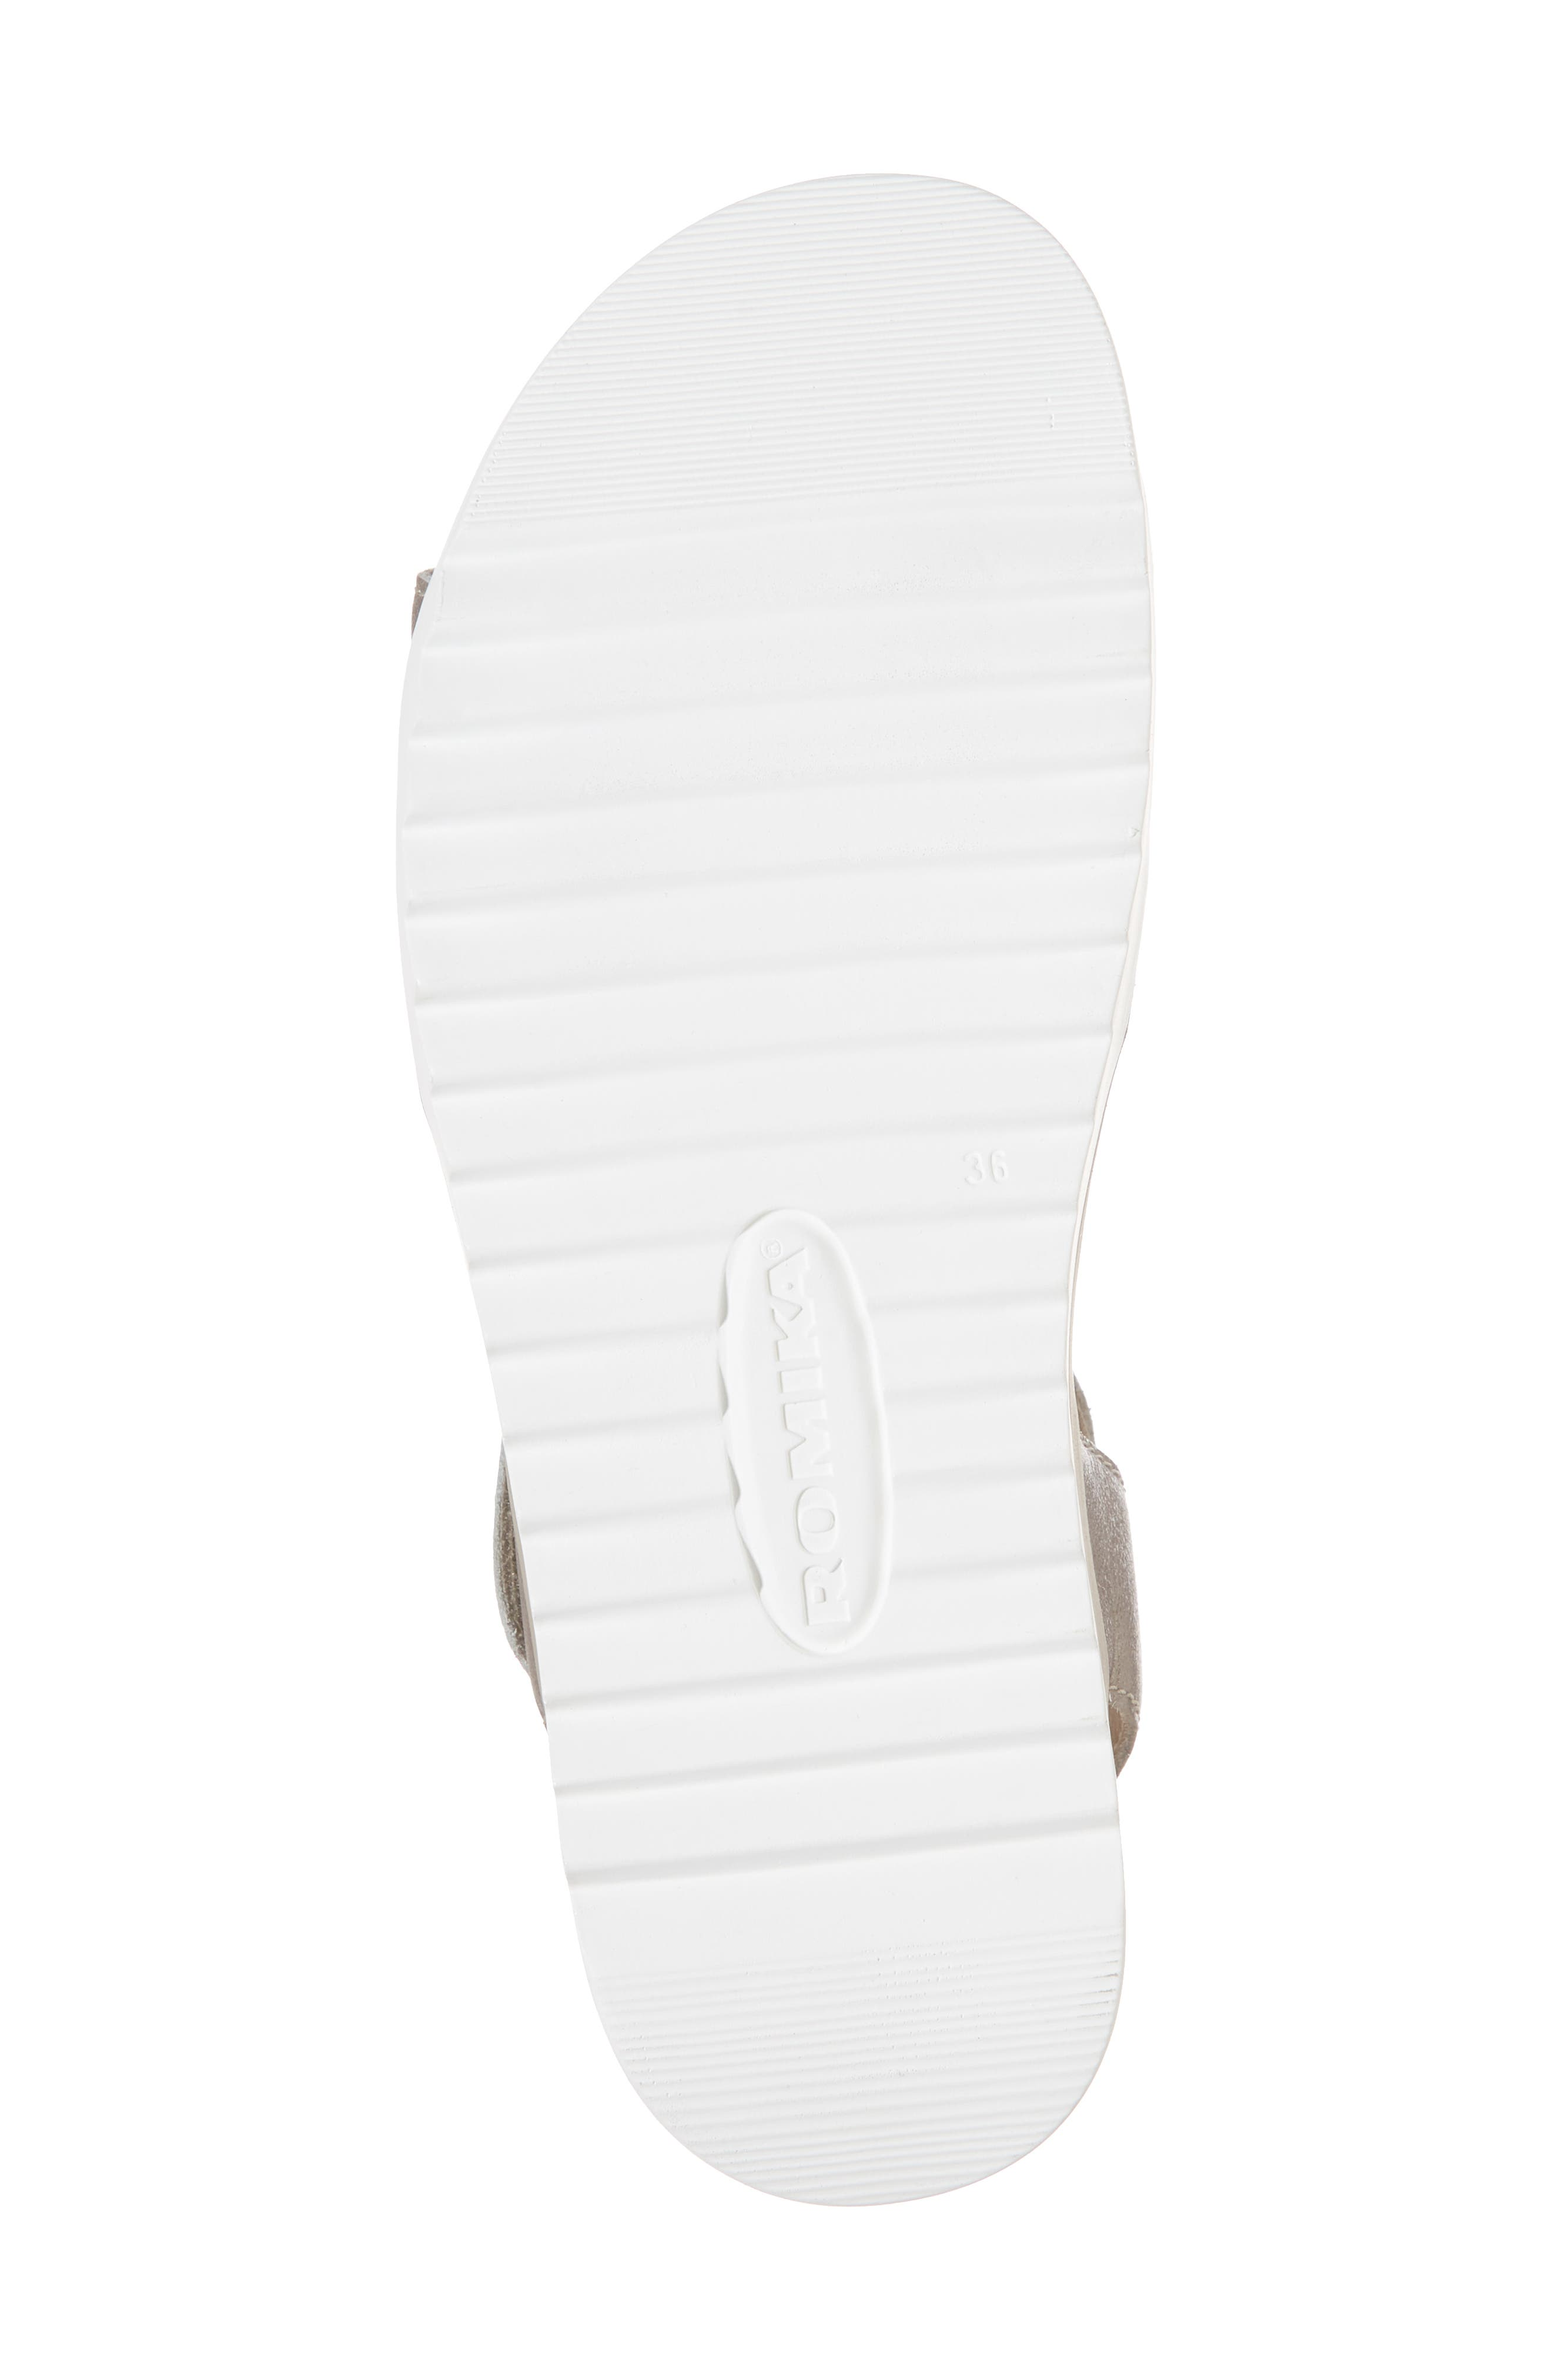 ROMIKA<SUP>®</SUP>, Hollywood 04 Sandal, Alternate thumbnail 6, color, PLATINUM LEATHER